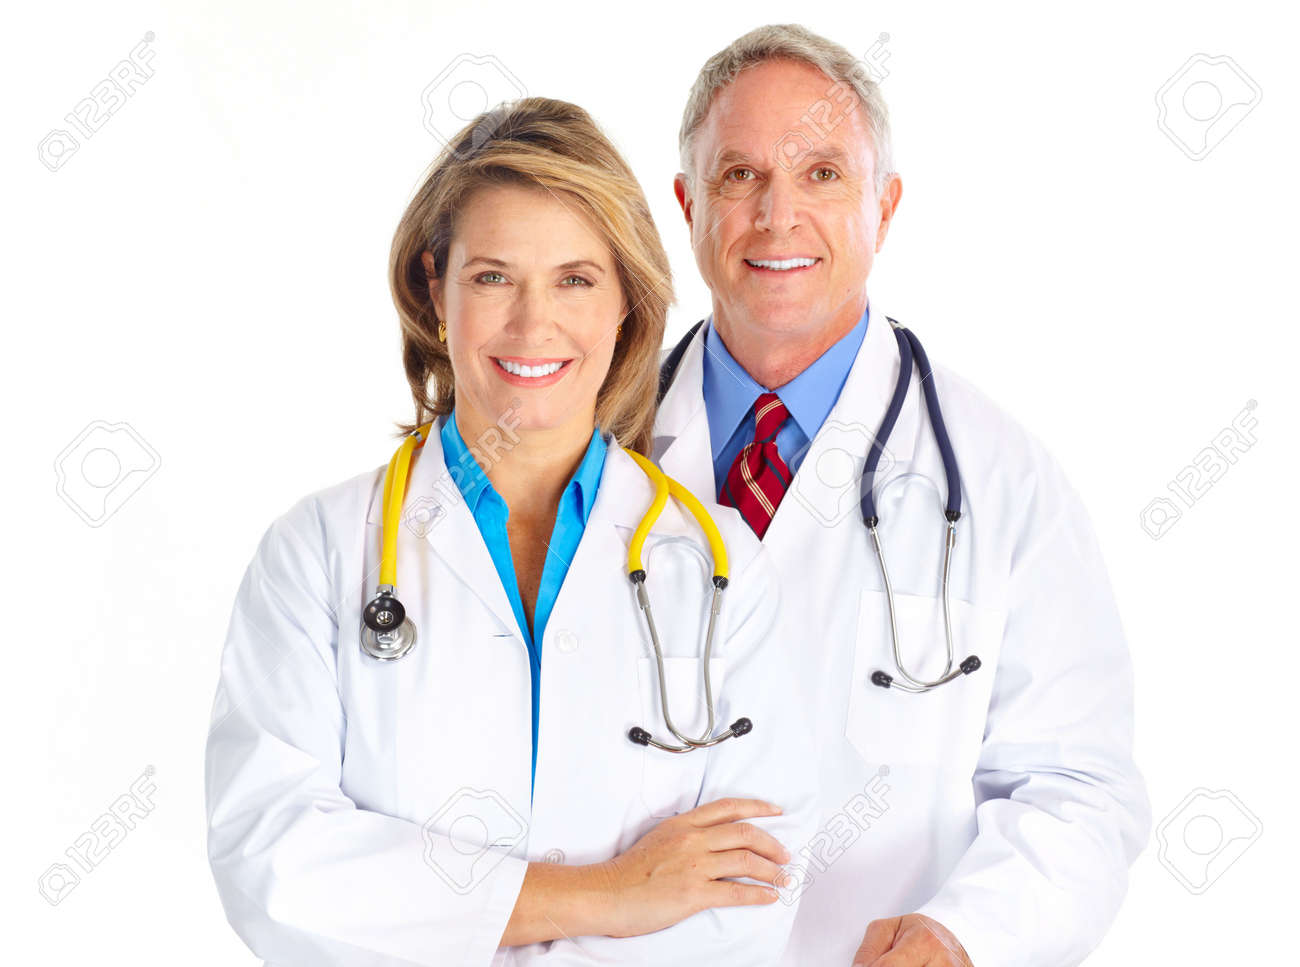 Smiling medical doctors with stethoscope. Isolated over white background Stock Photo - 6744254